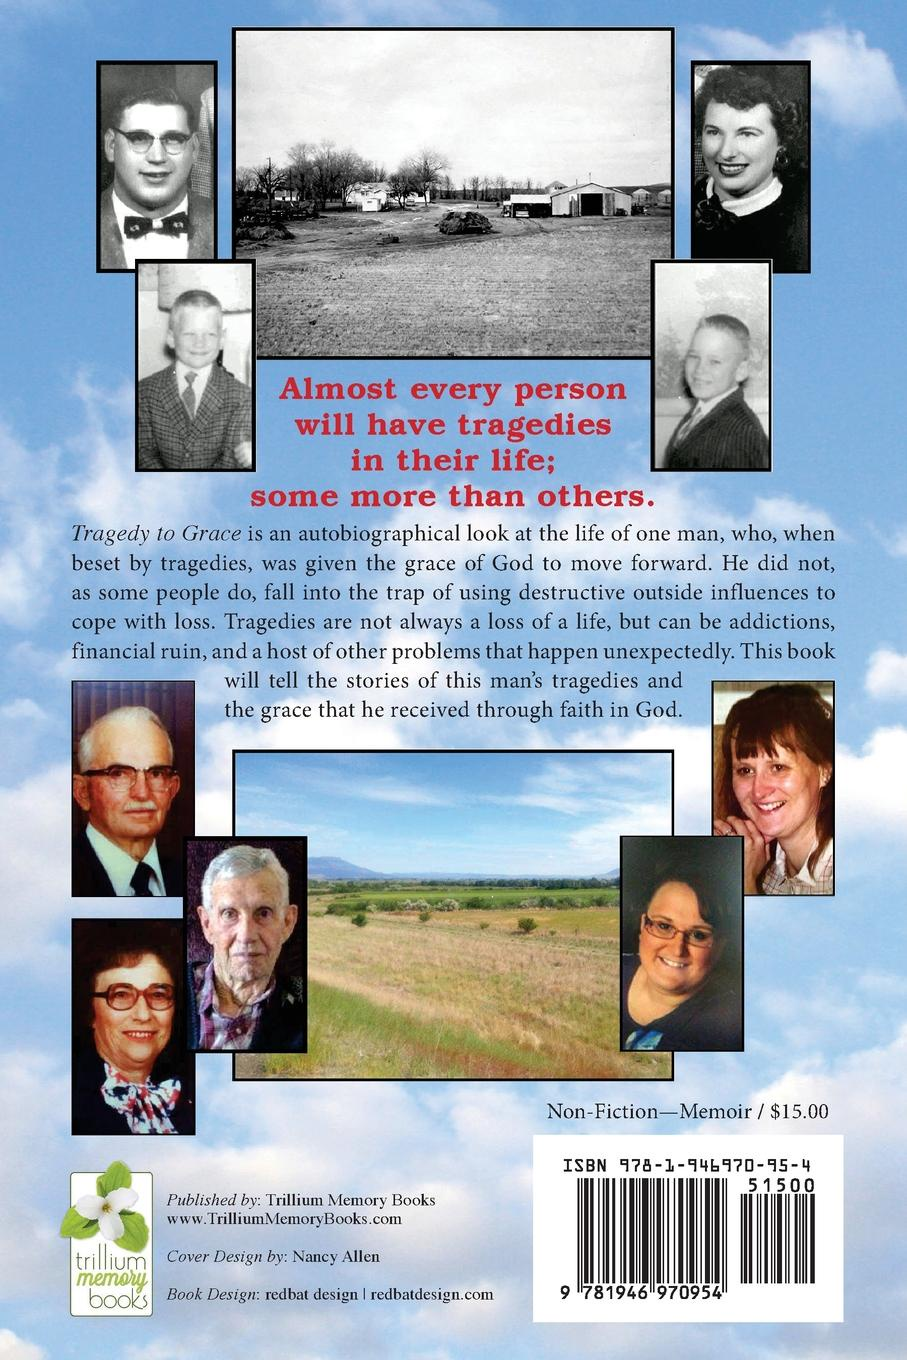 Daniel S. Pokorney Tragedy to Grace. A personal history of perseverance and growth through God